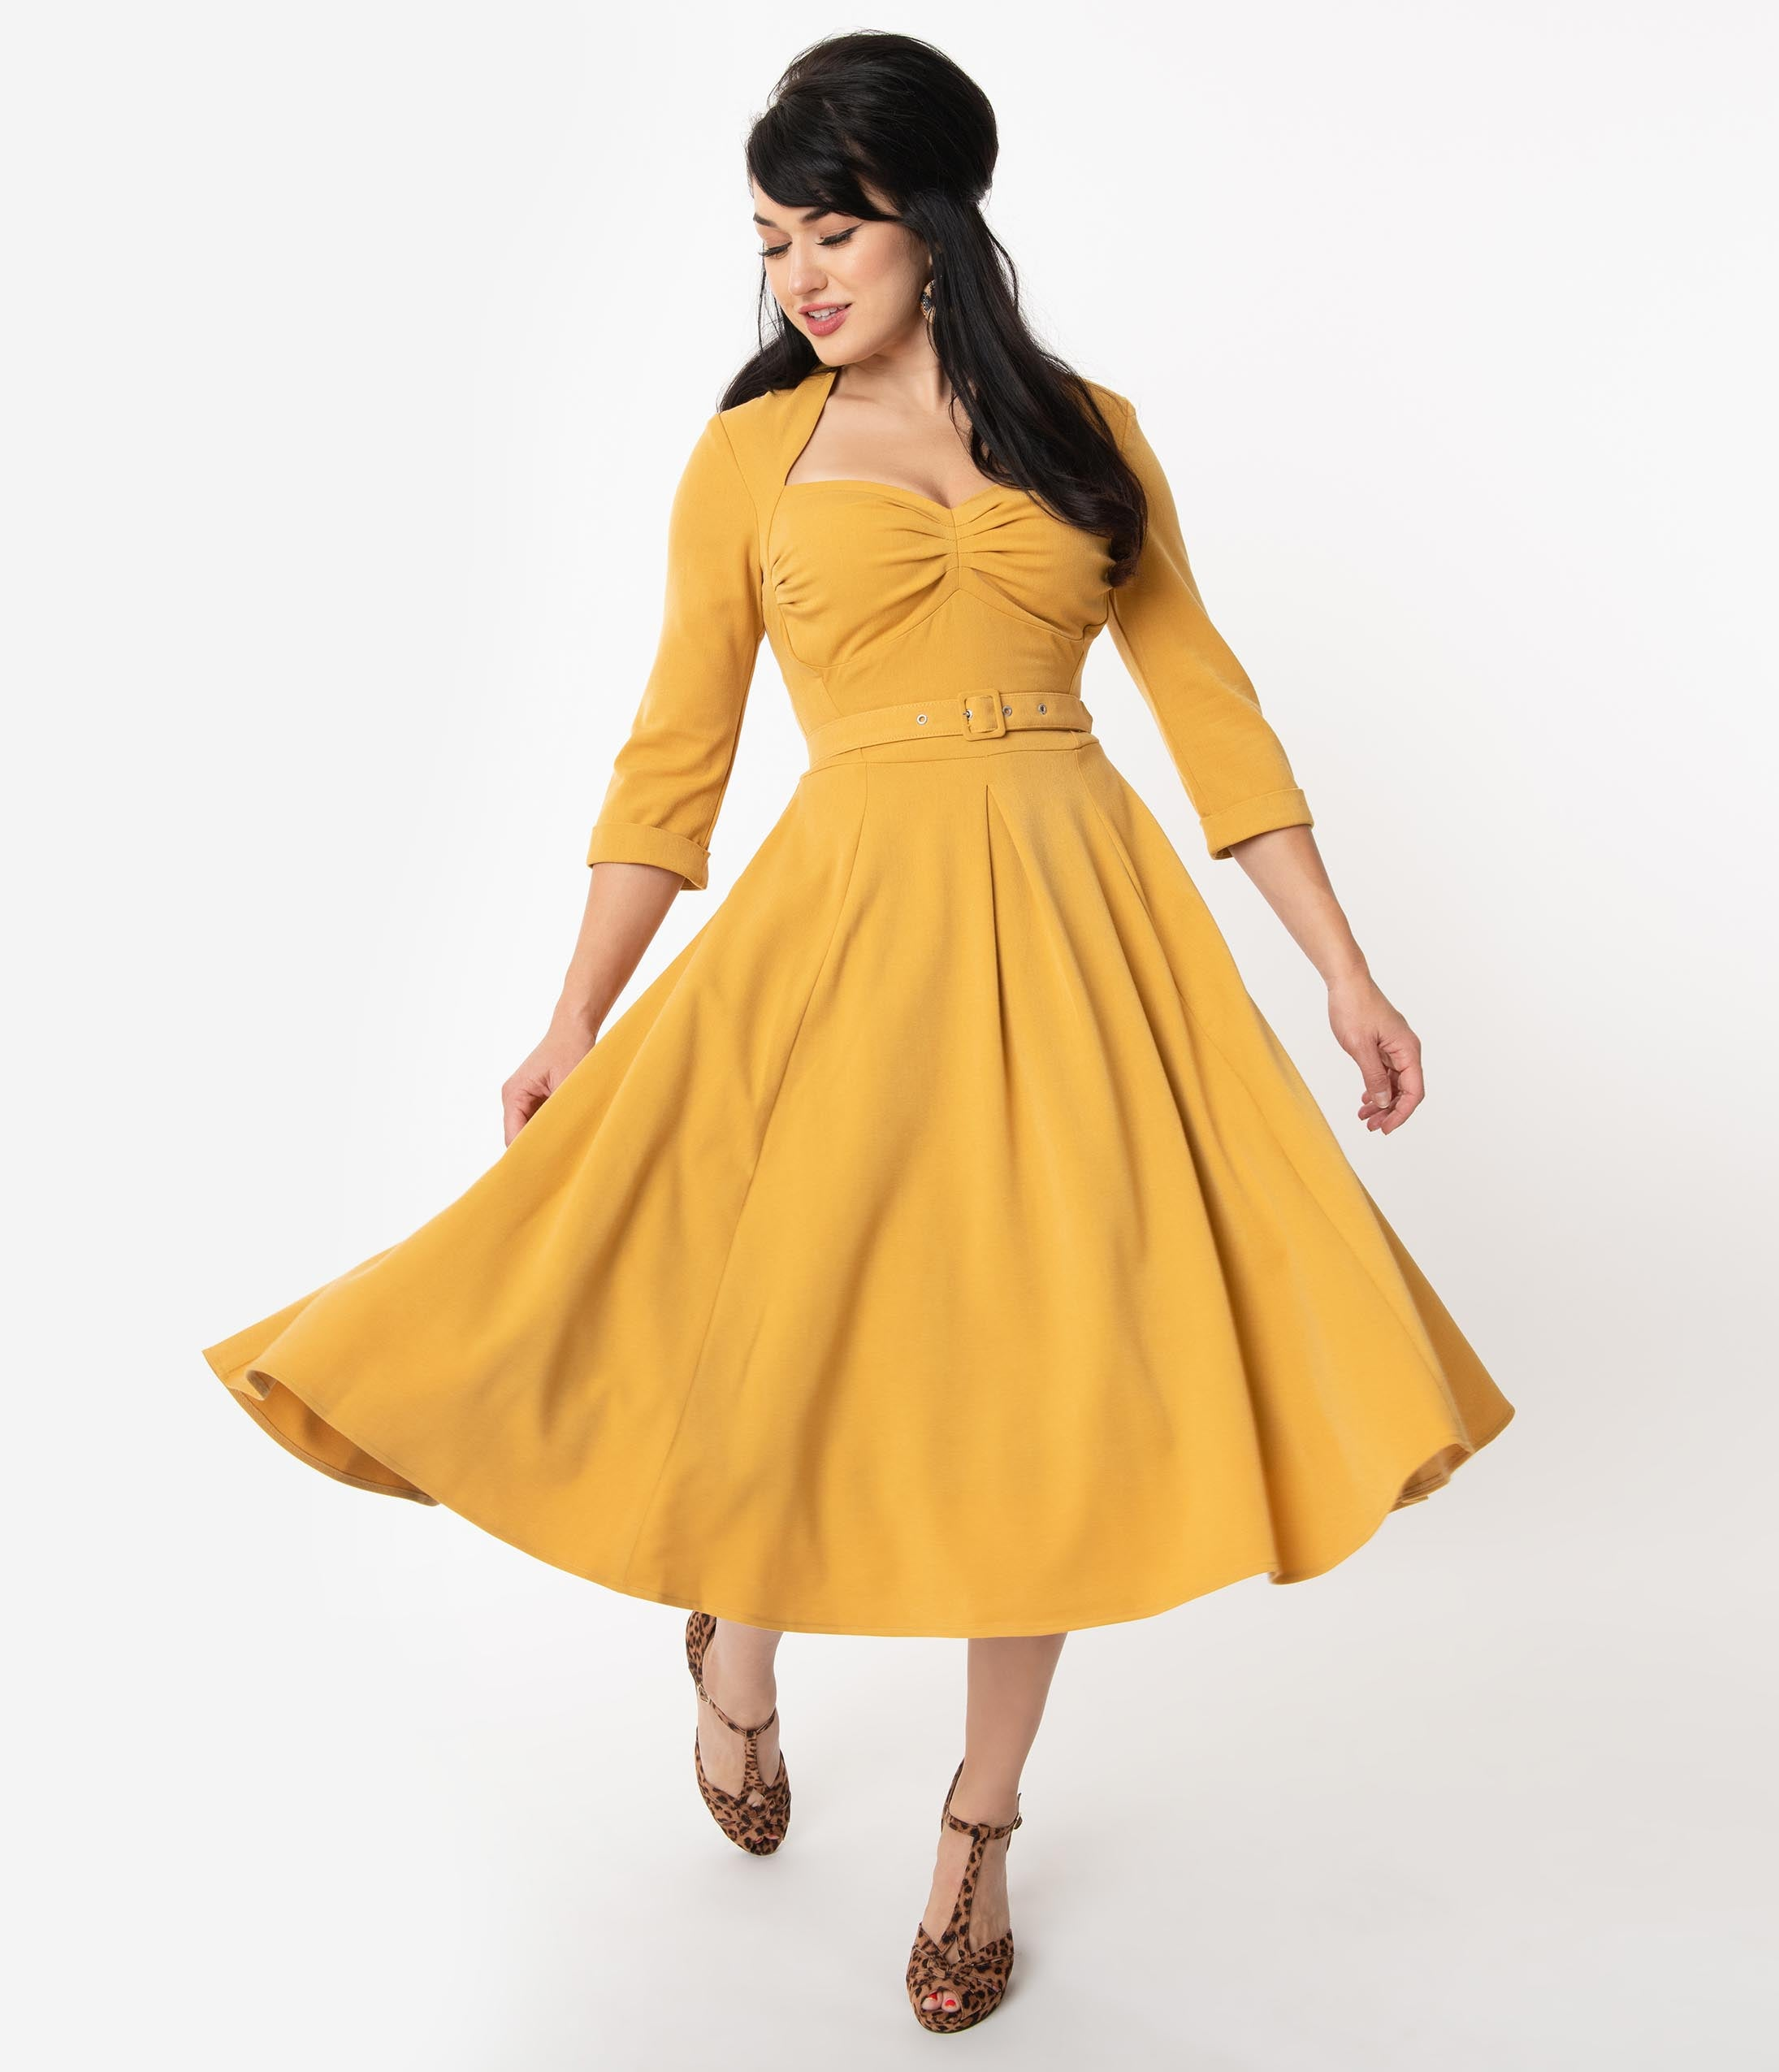 500 Vintage Style Dresses for Sale | Vintage Inspired Dresses Miss Candyfloss 1950S Mustard Yellow Naila Swing Dress $122.00 AT vintagedancer.com